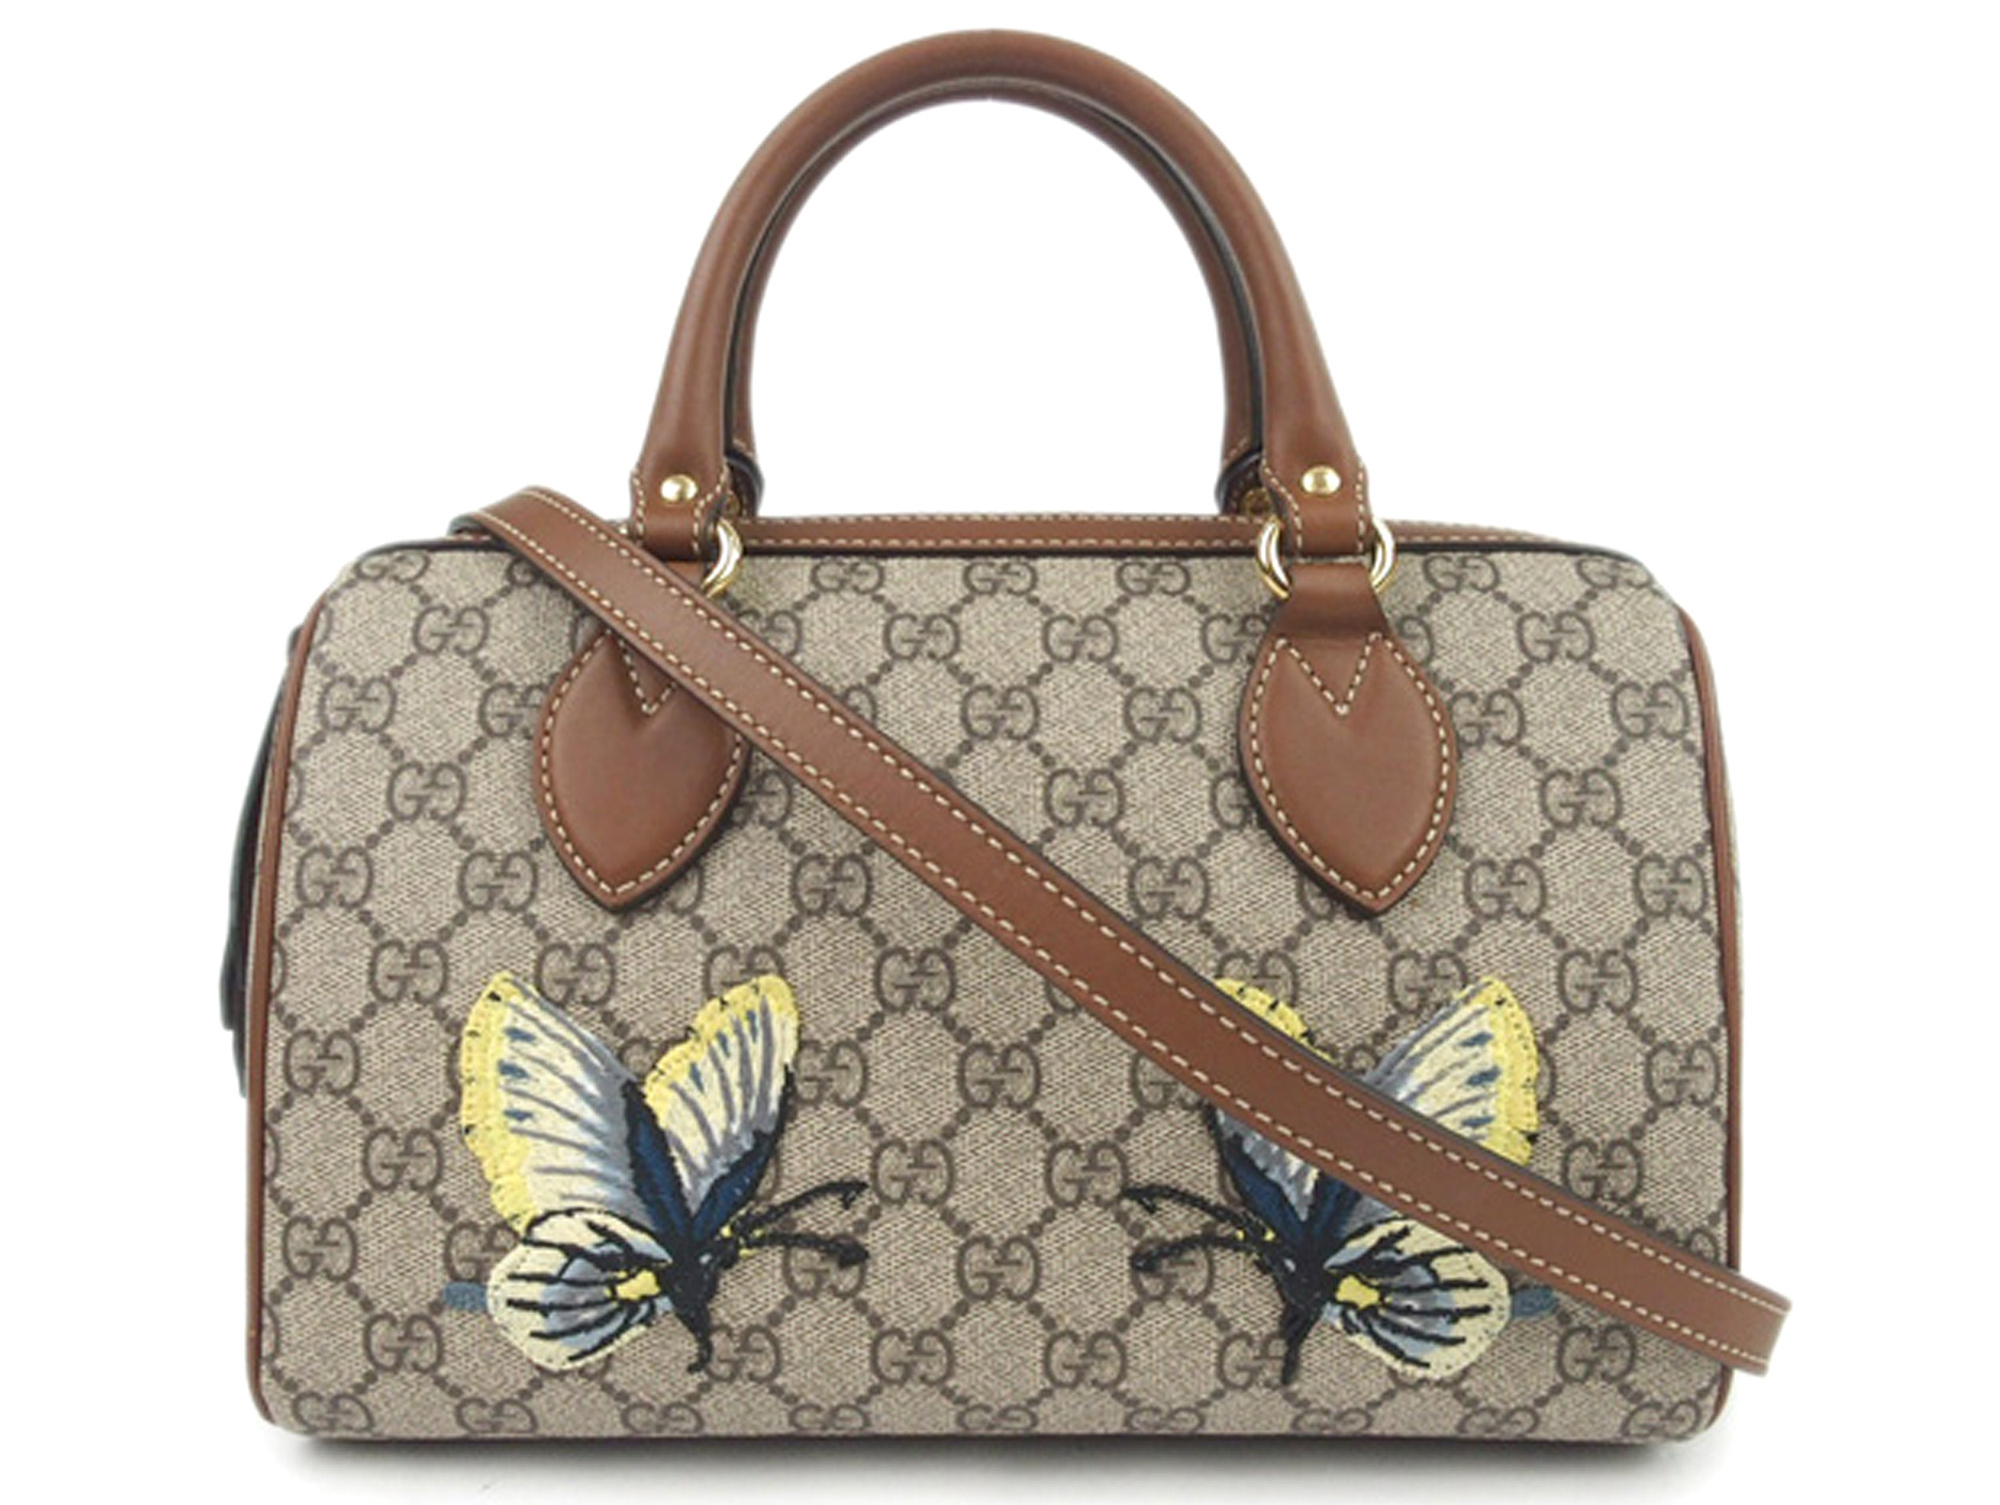 Gucci GG Supreme Butterfly Embroidered Bag